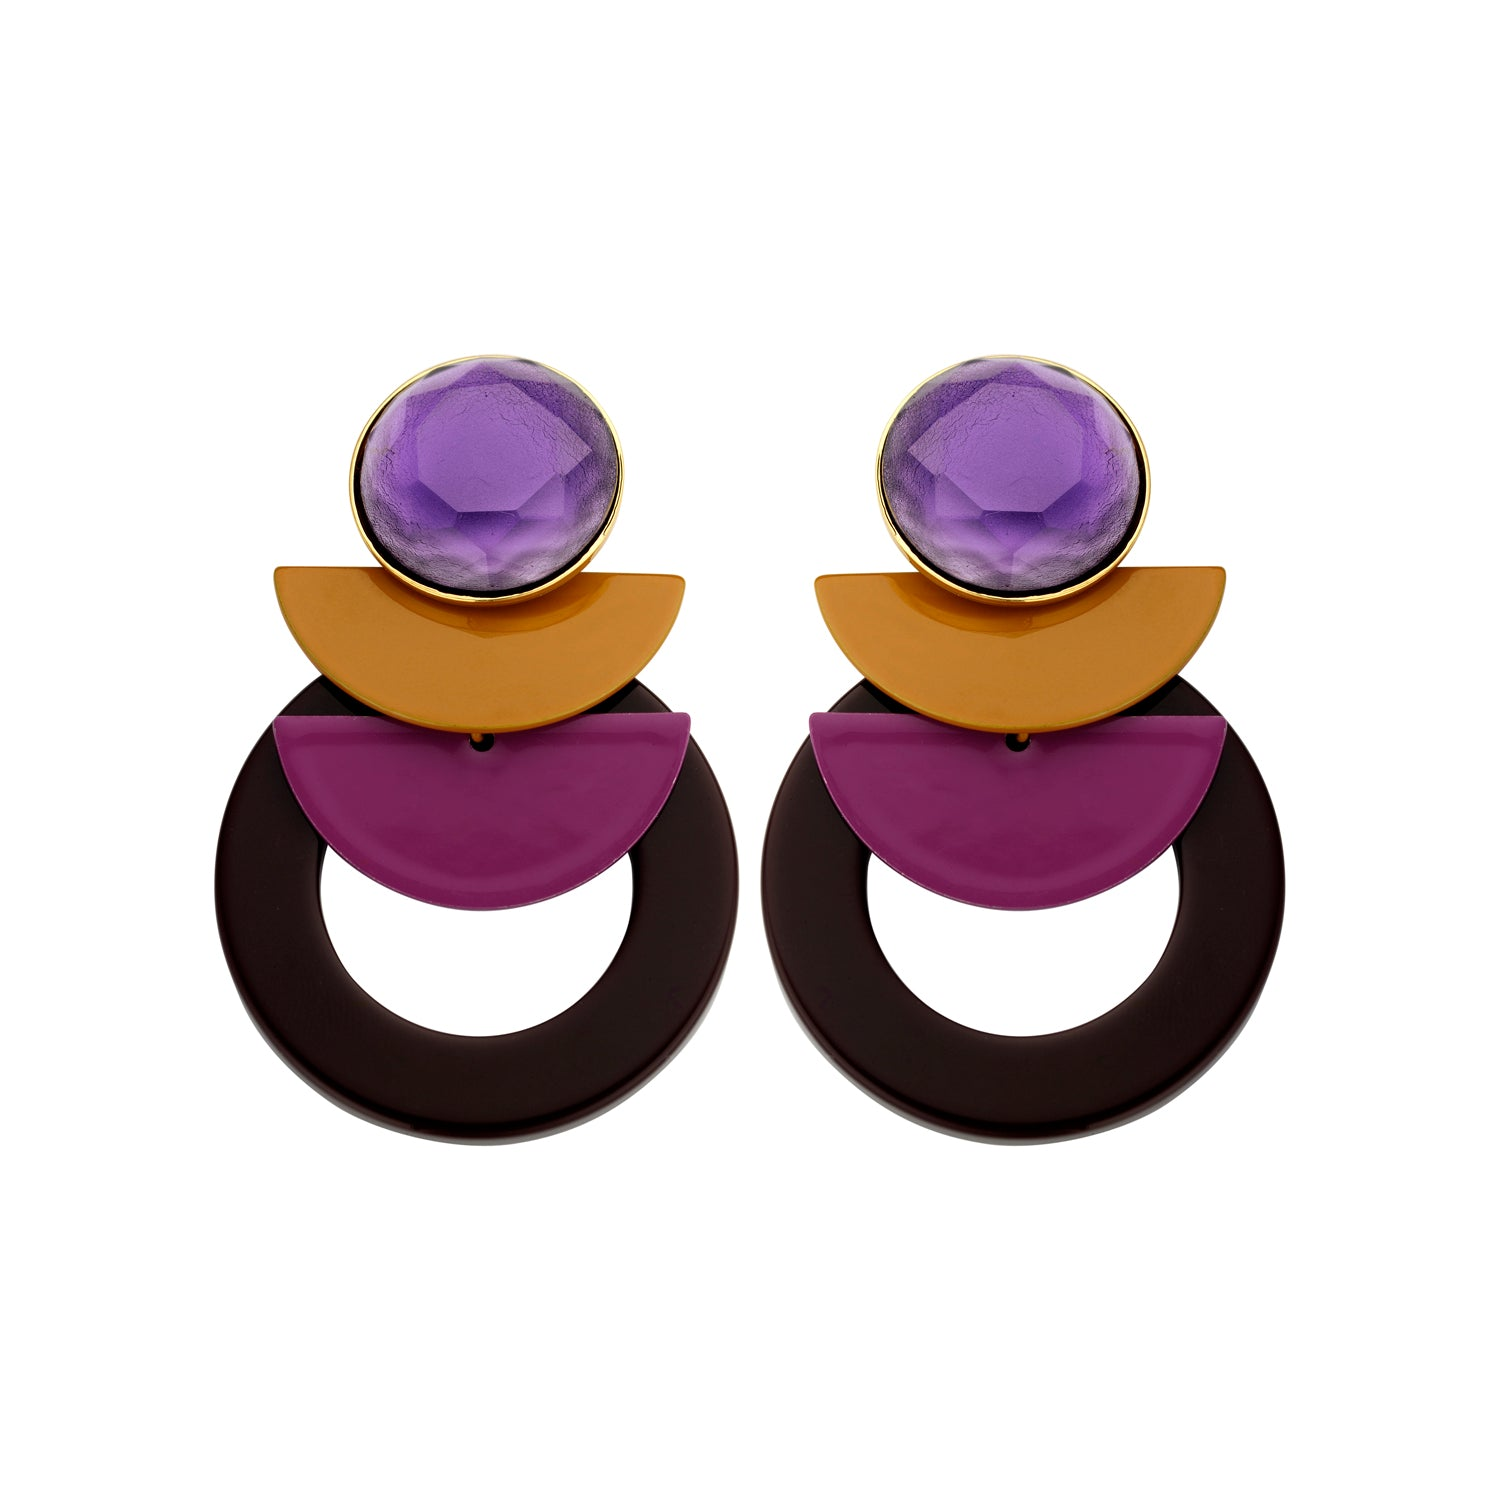 Sonia statement dark purple earrings - Souvenirs de Pomme